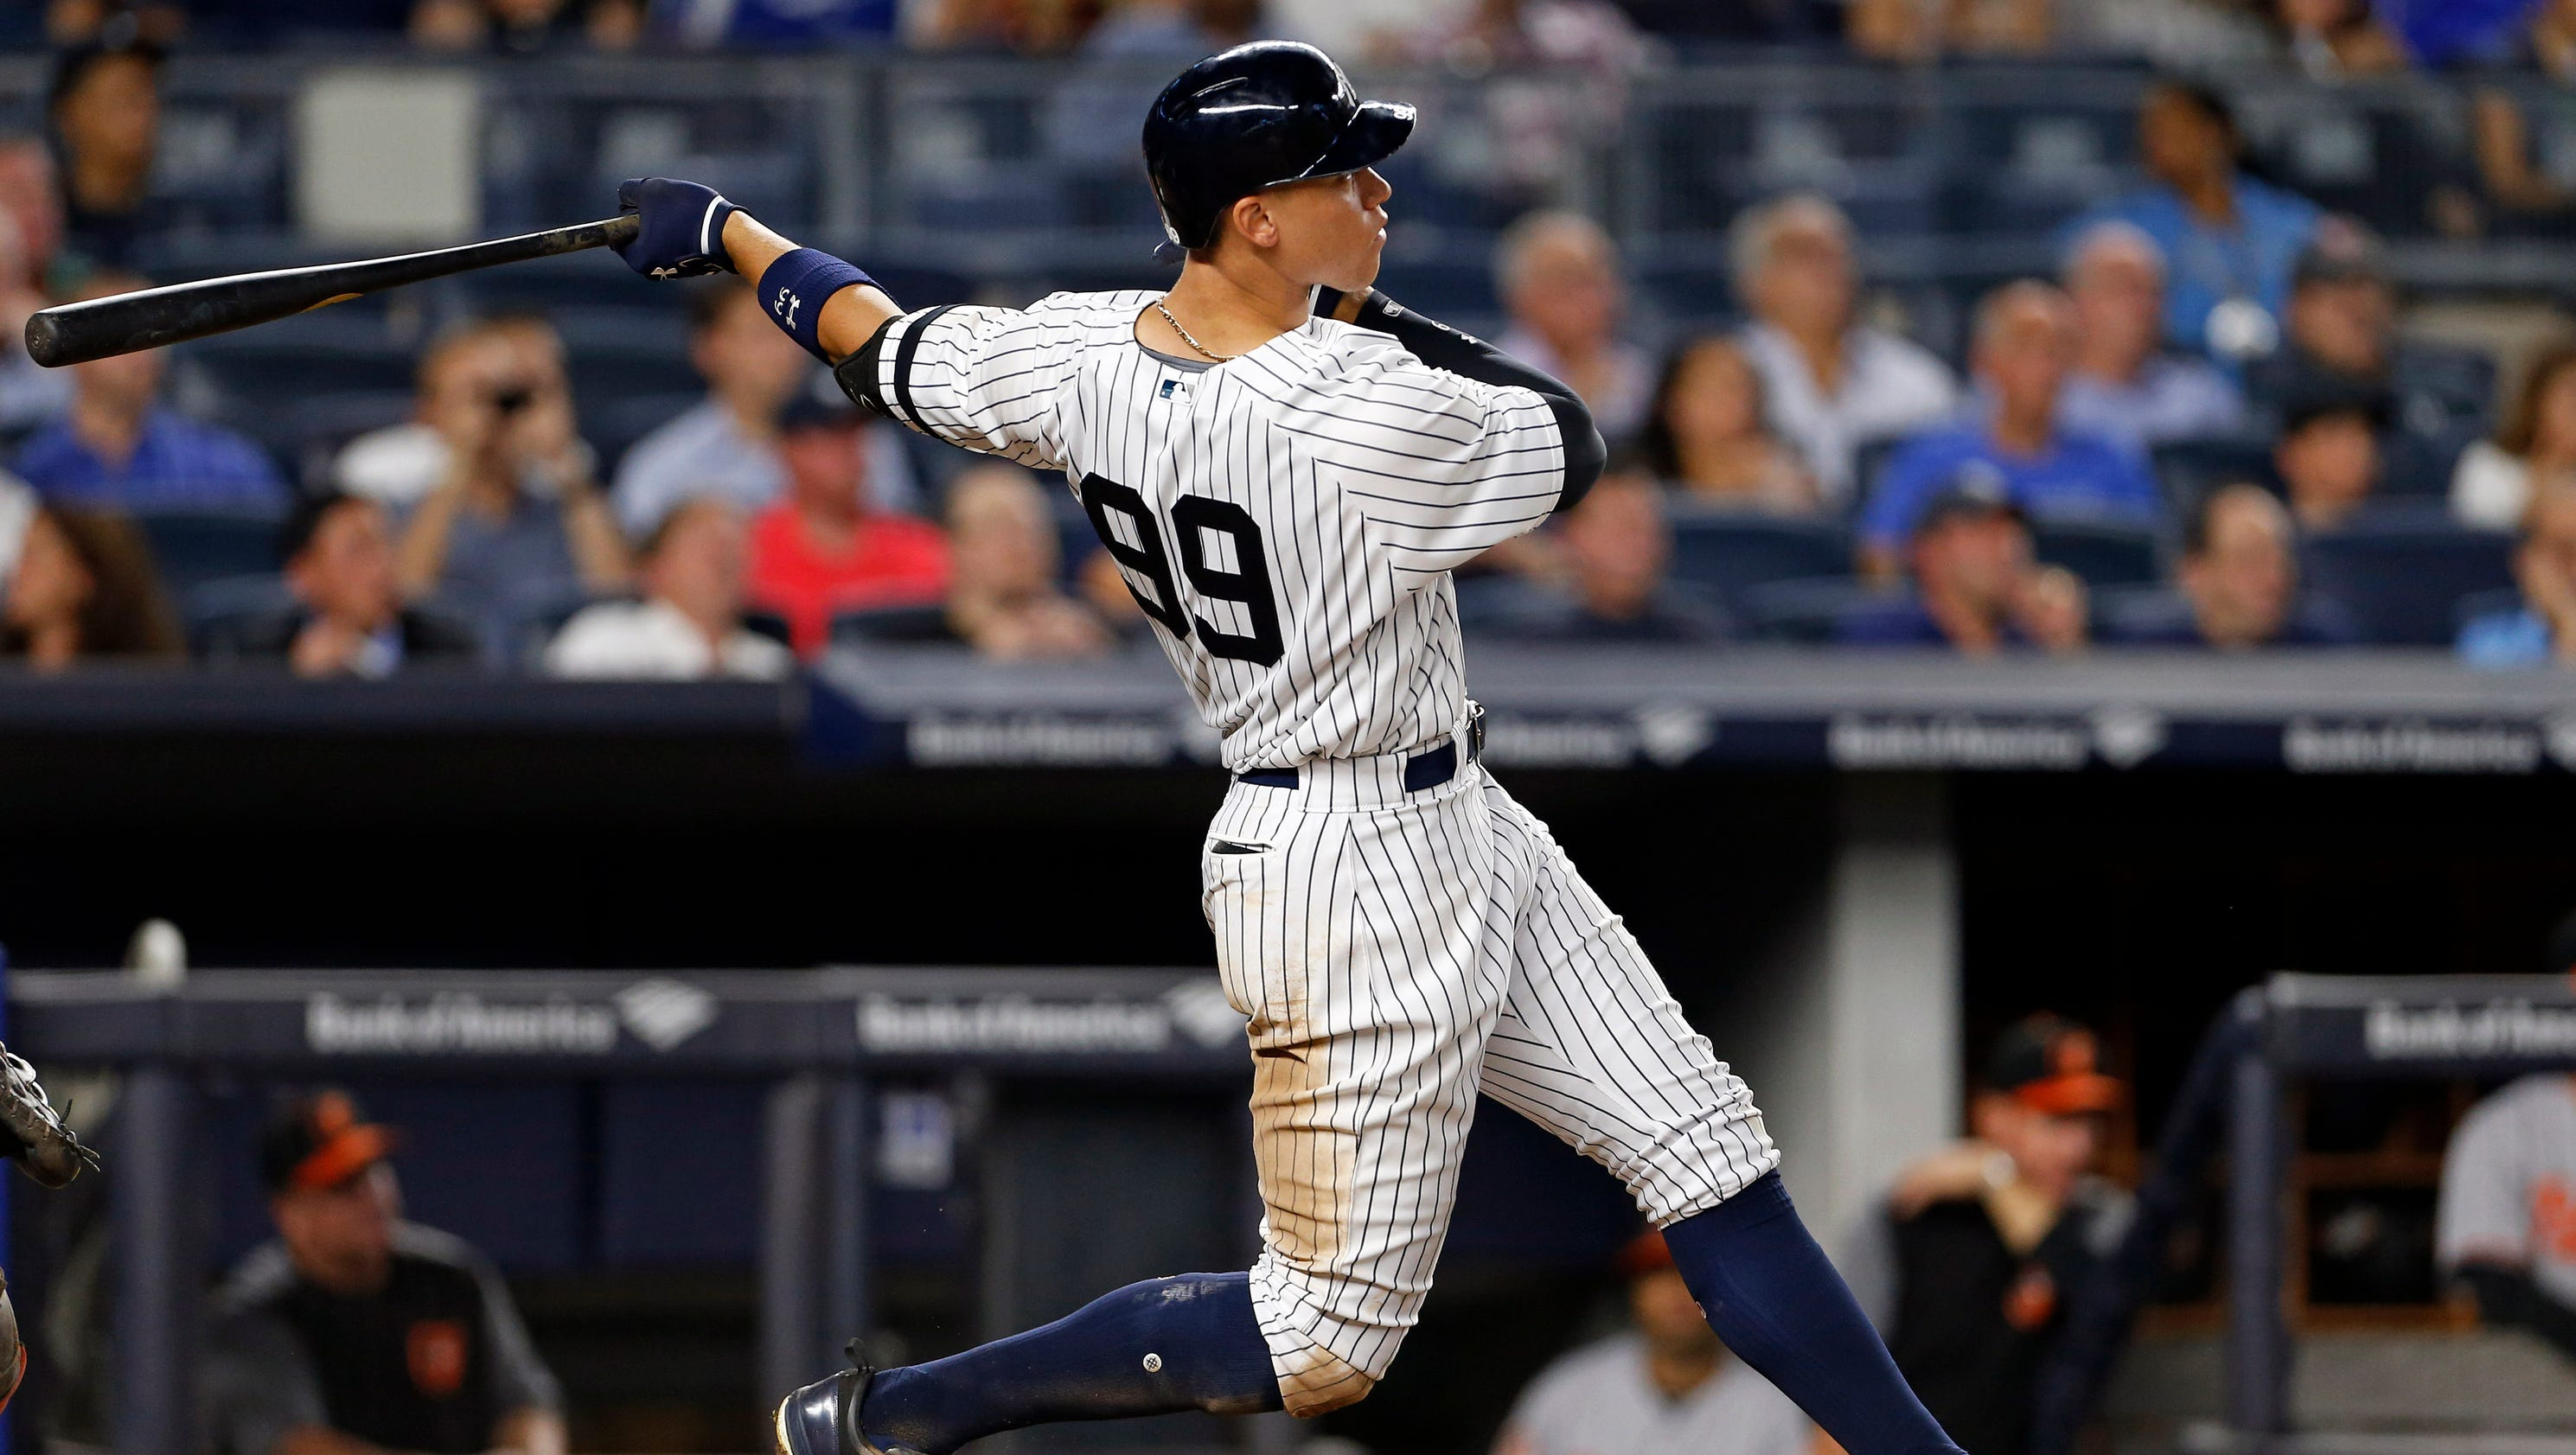 Aaron Judge is back from an ugly August, giving Yankees a fearsome look for October